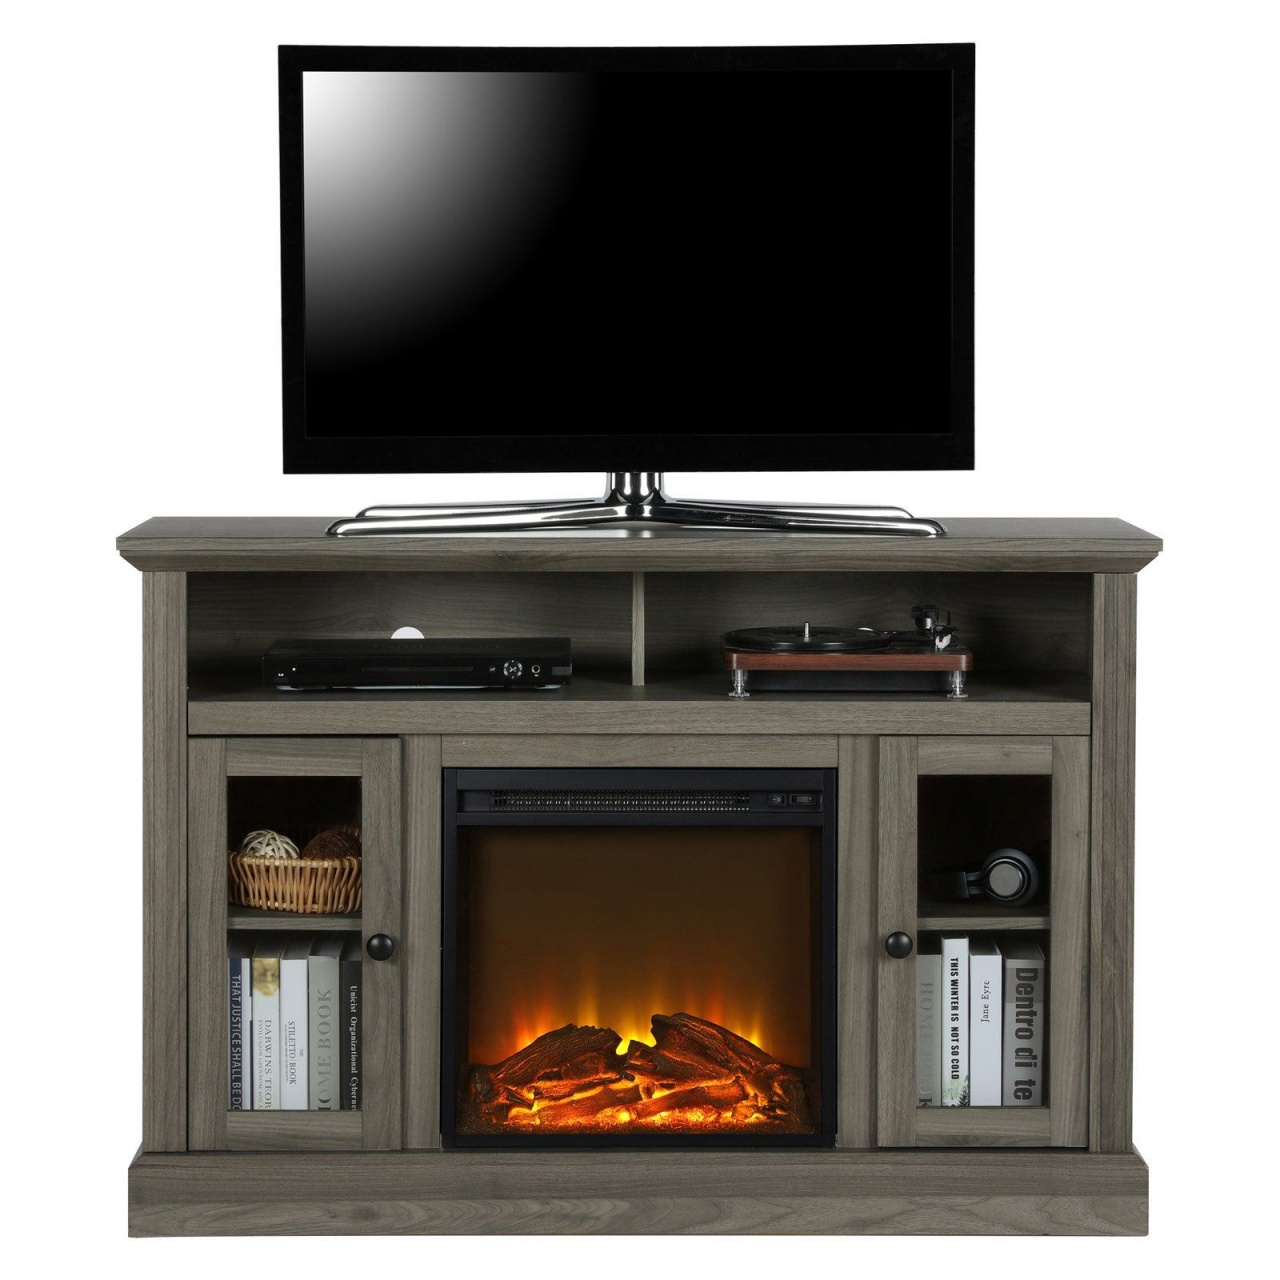 65 inch fireplace tv stand ameriwood home chicago electric fireplace tv stand in 2019 from 65 inch fireplace tv stand